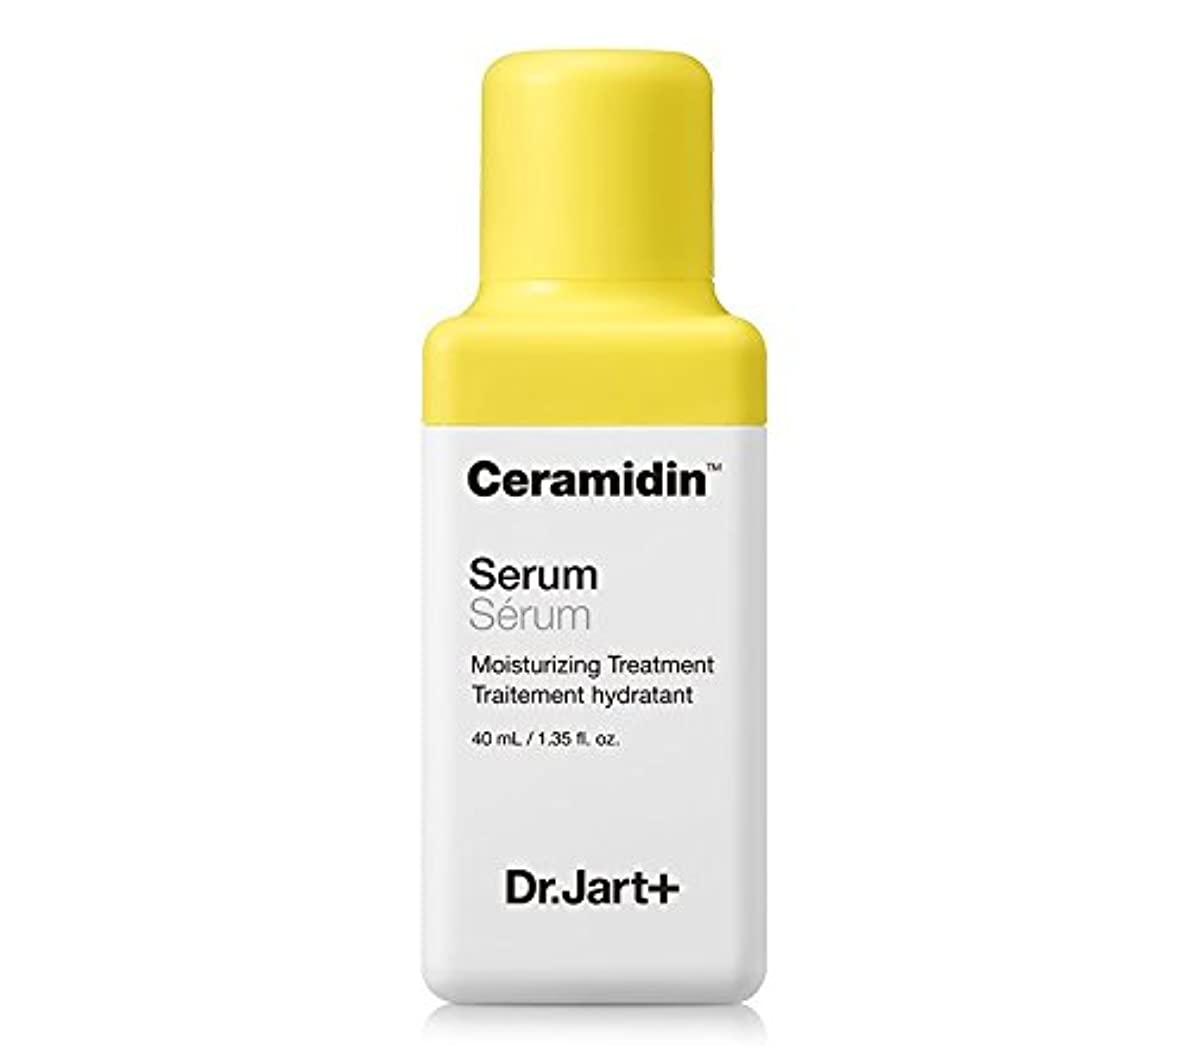 手綱代替素人Dr. Jart New Ceramidin Serum 40ml Highly-intensive filler serum 高強度充填剤血清